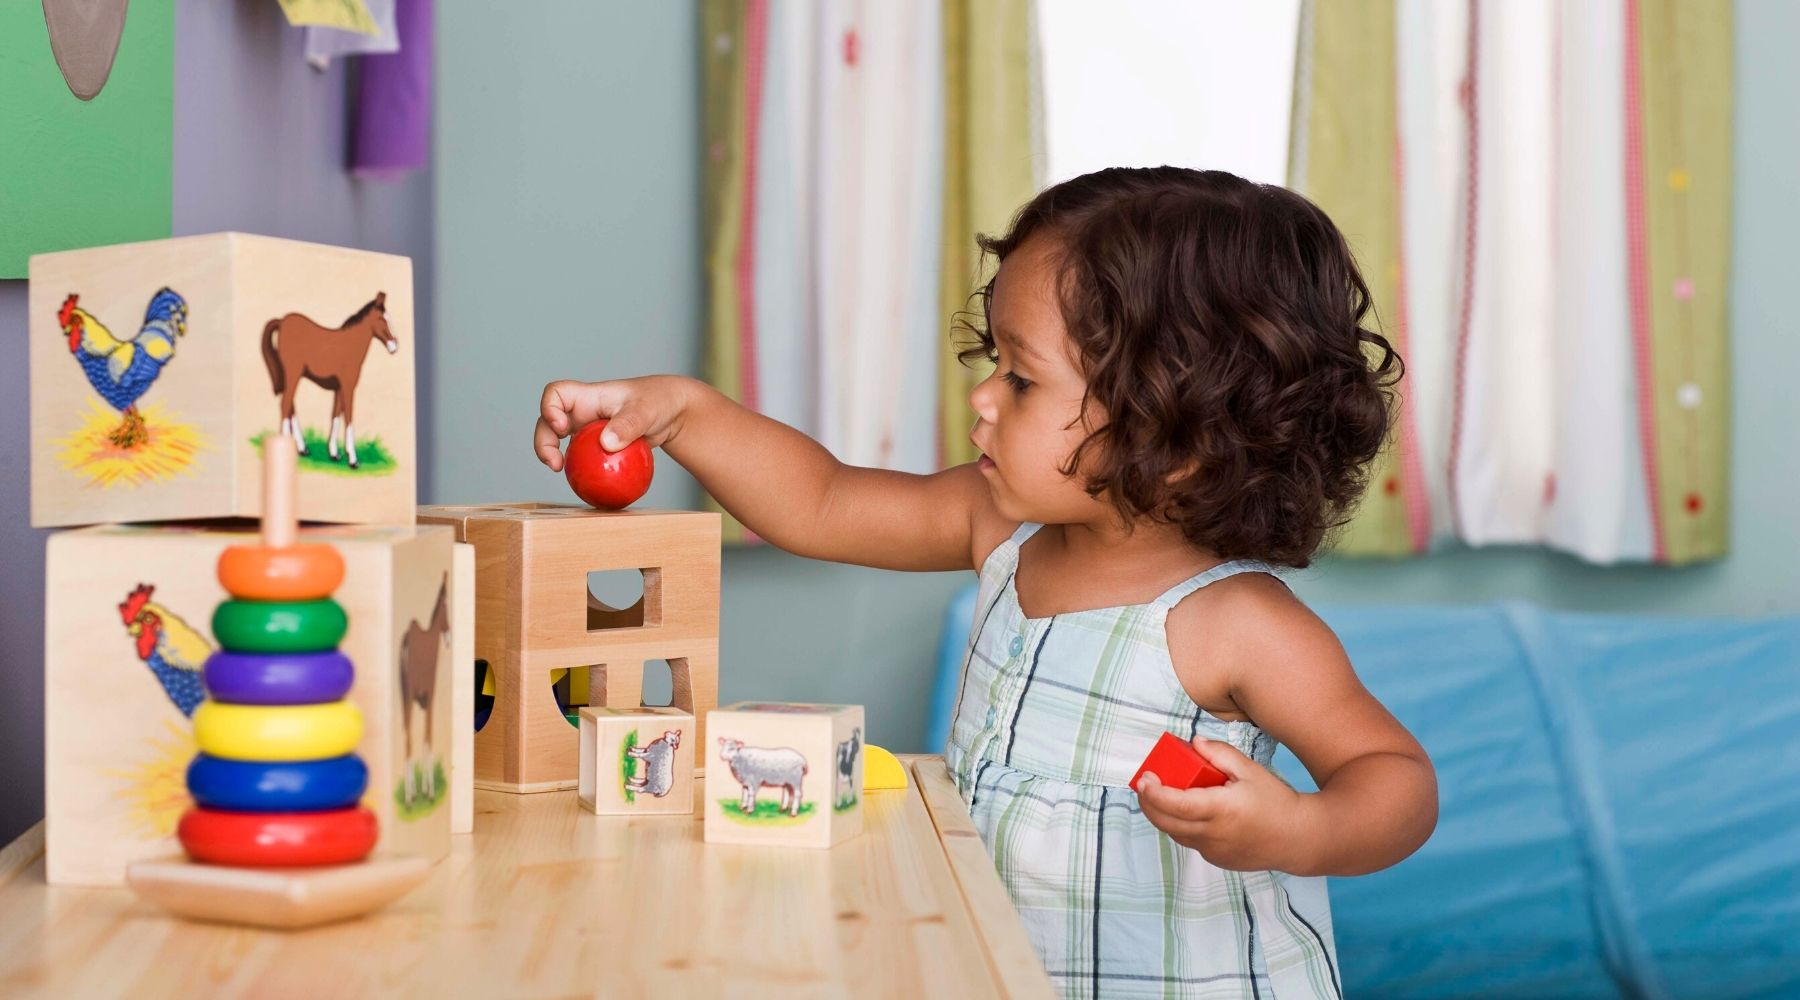 Educational Chores for Toddlers by Age